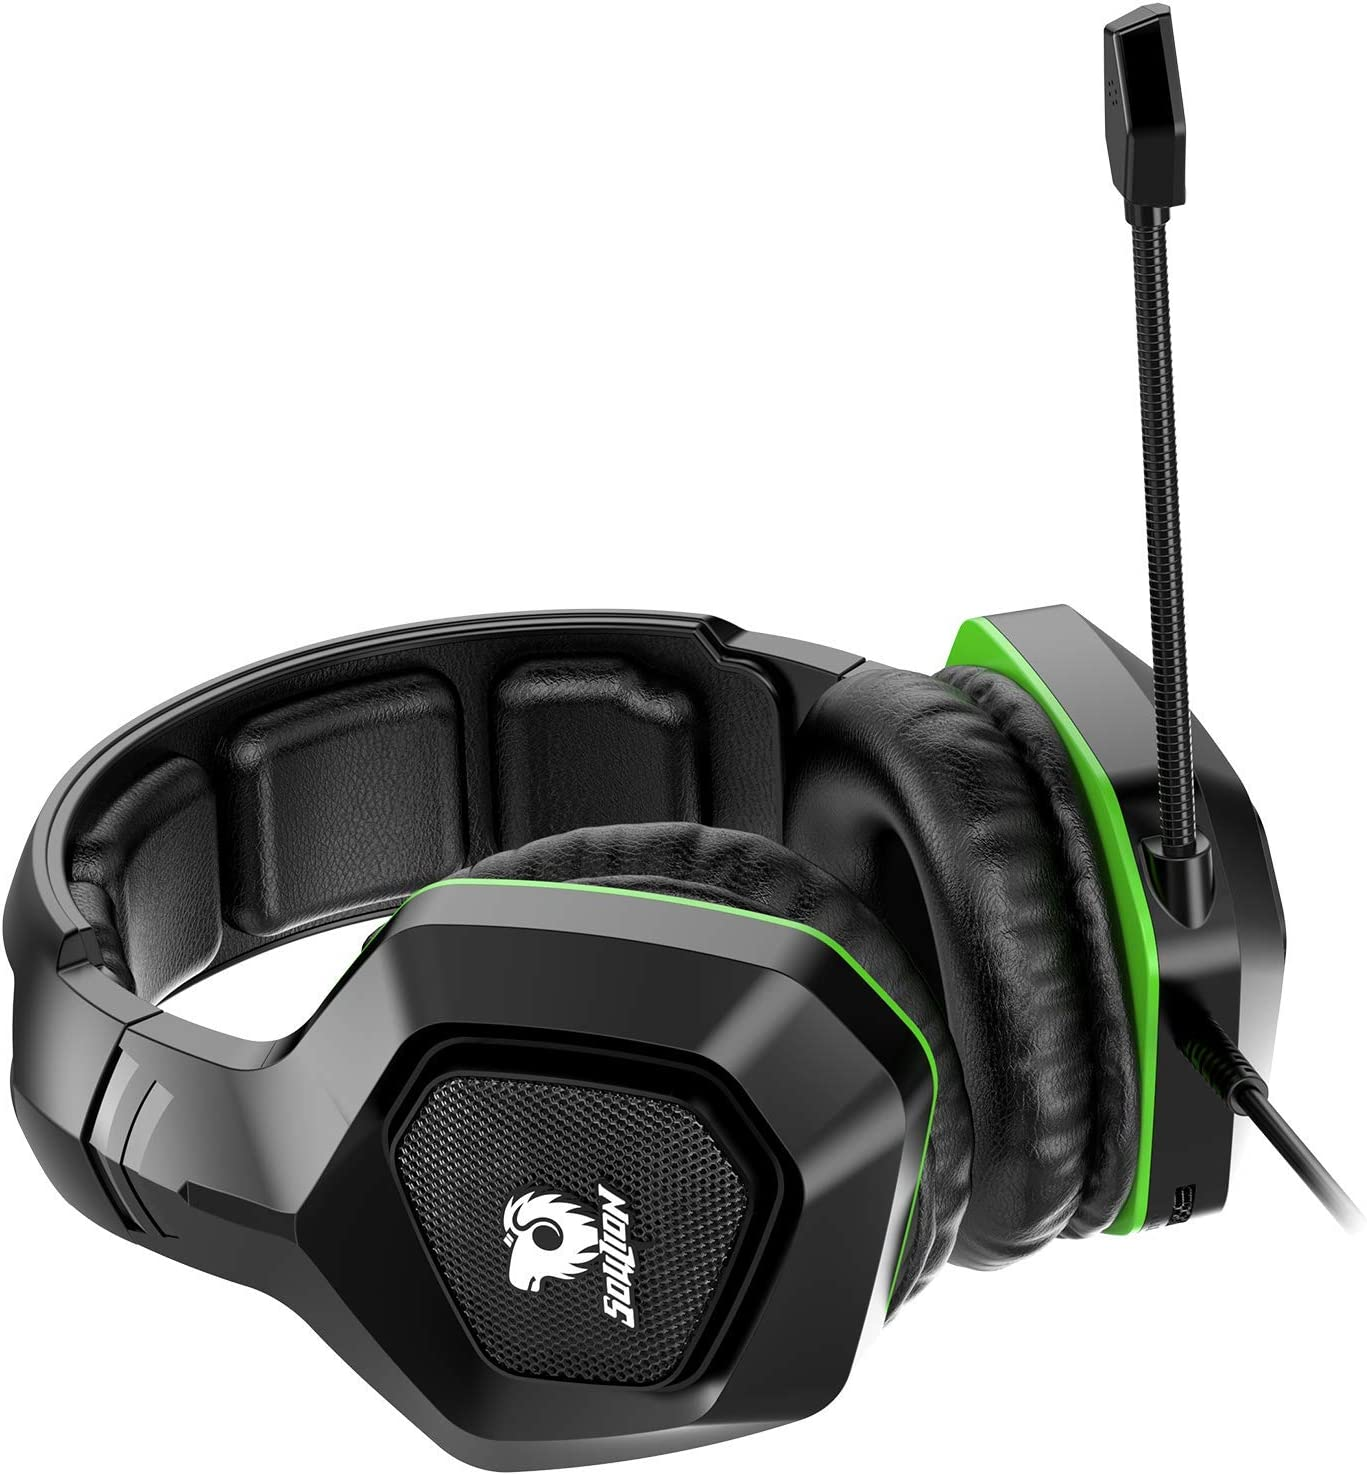 Soulion Tracer 20 Gaming Headset for PS4 Xbox One PC Over Ear Headphones with Noise Cancelling Microphone, Surround Sound, Breathable Soft Ear Pads